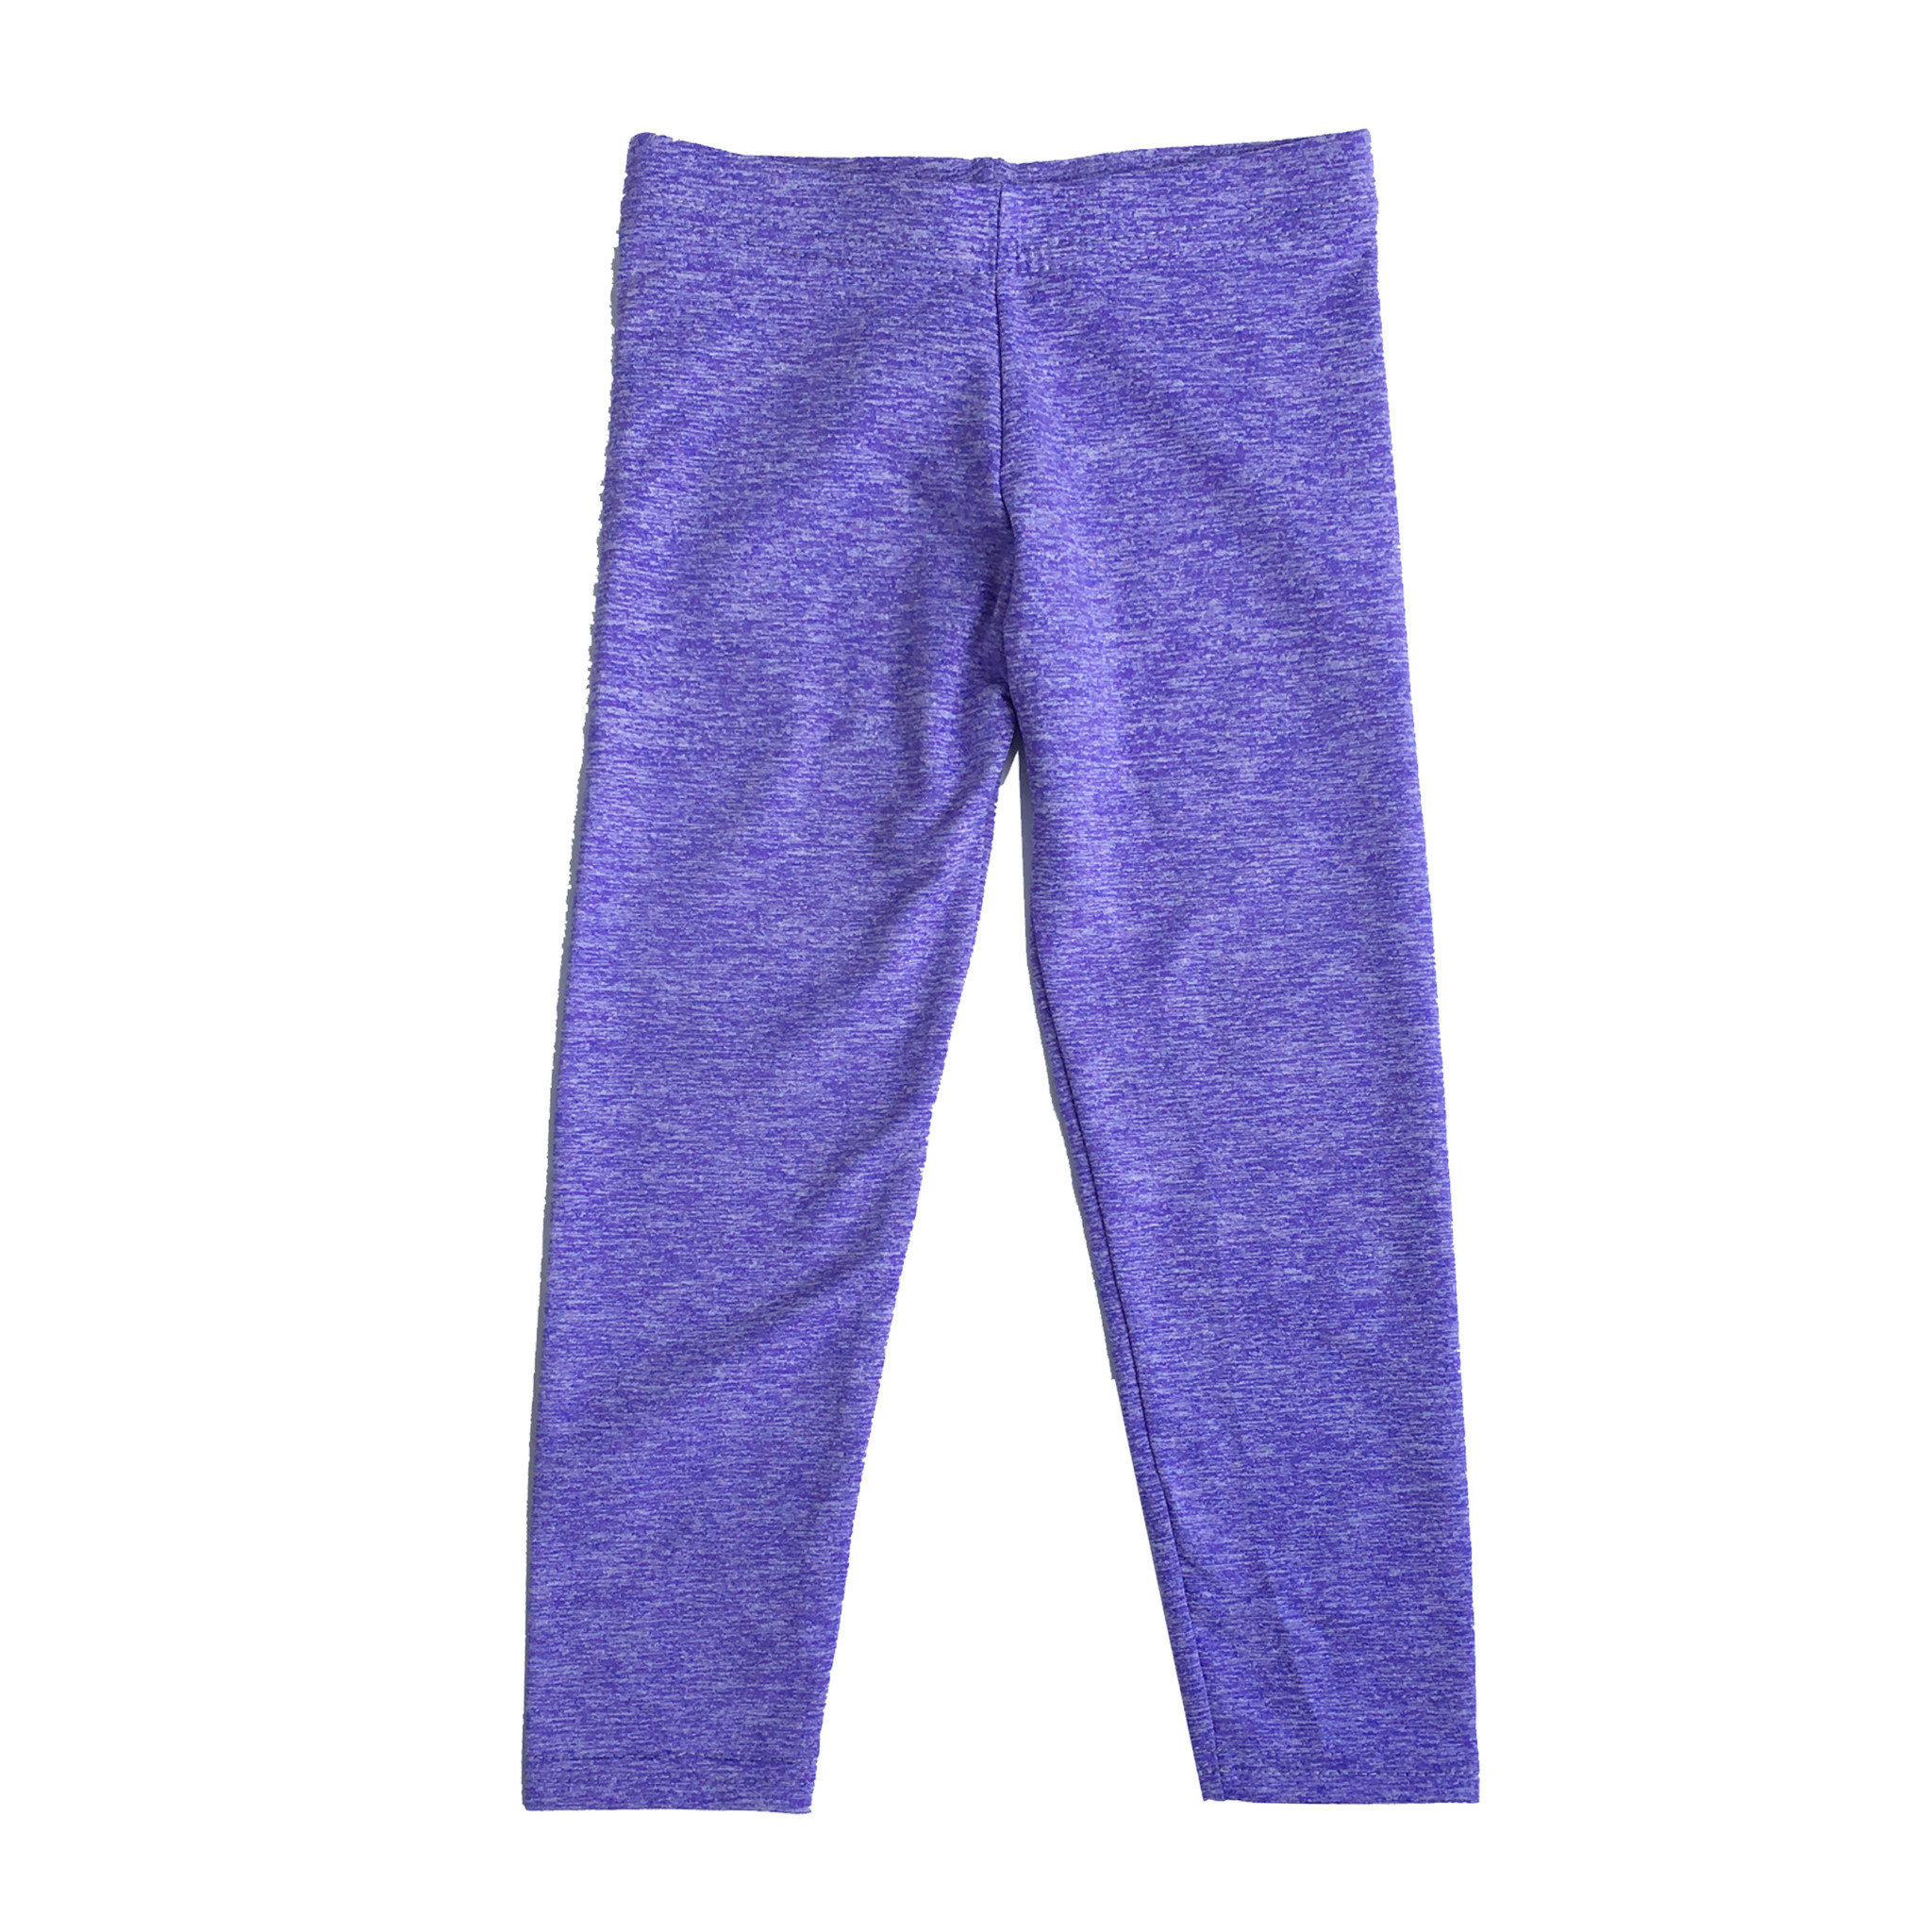 Dori Creations Violet/White Heathered Legging